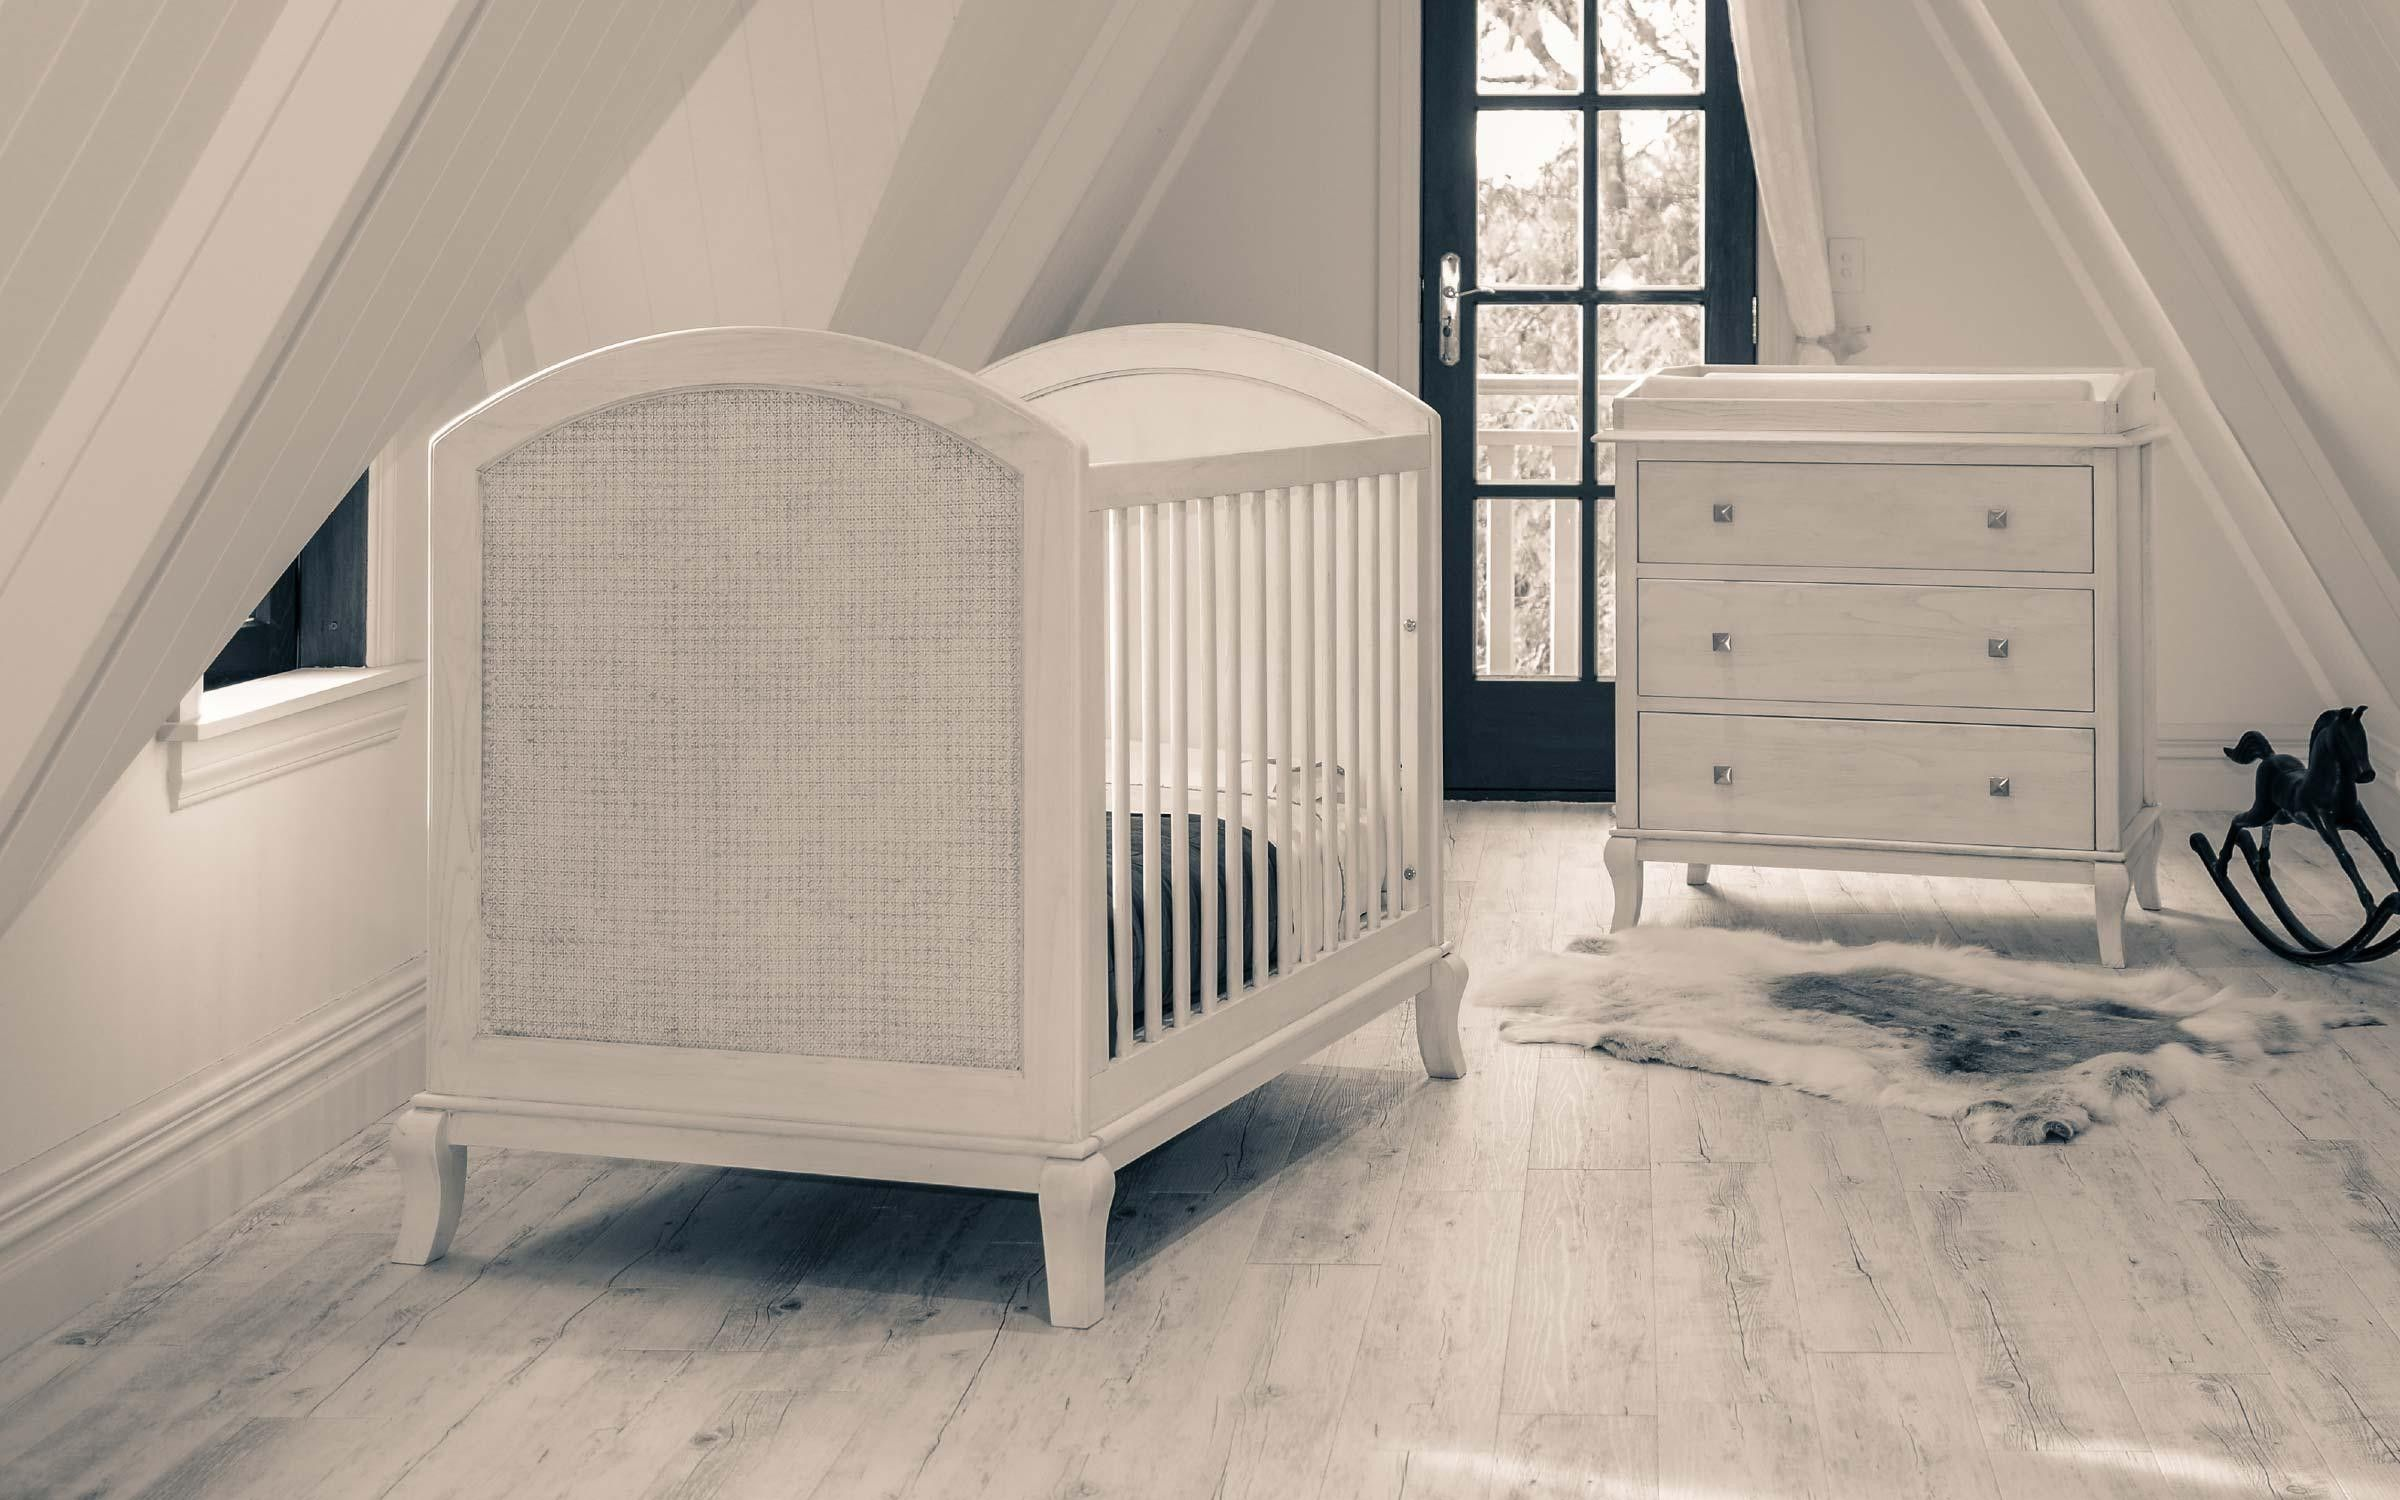 Grotime Chateau Cot White Washed White Wash White Nursery Cot